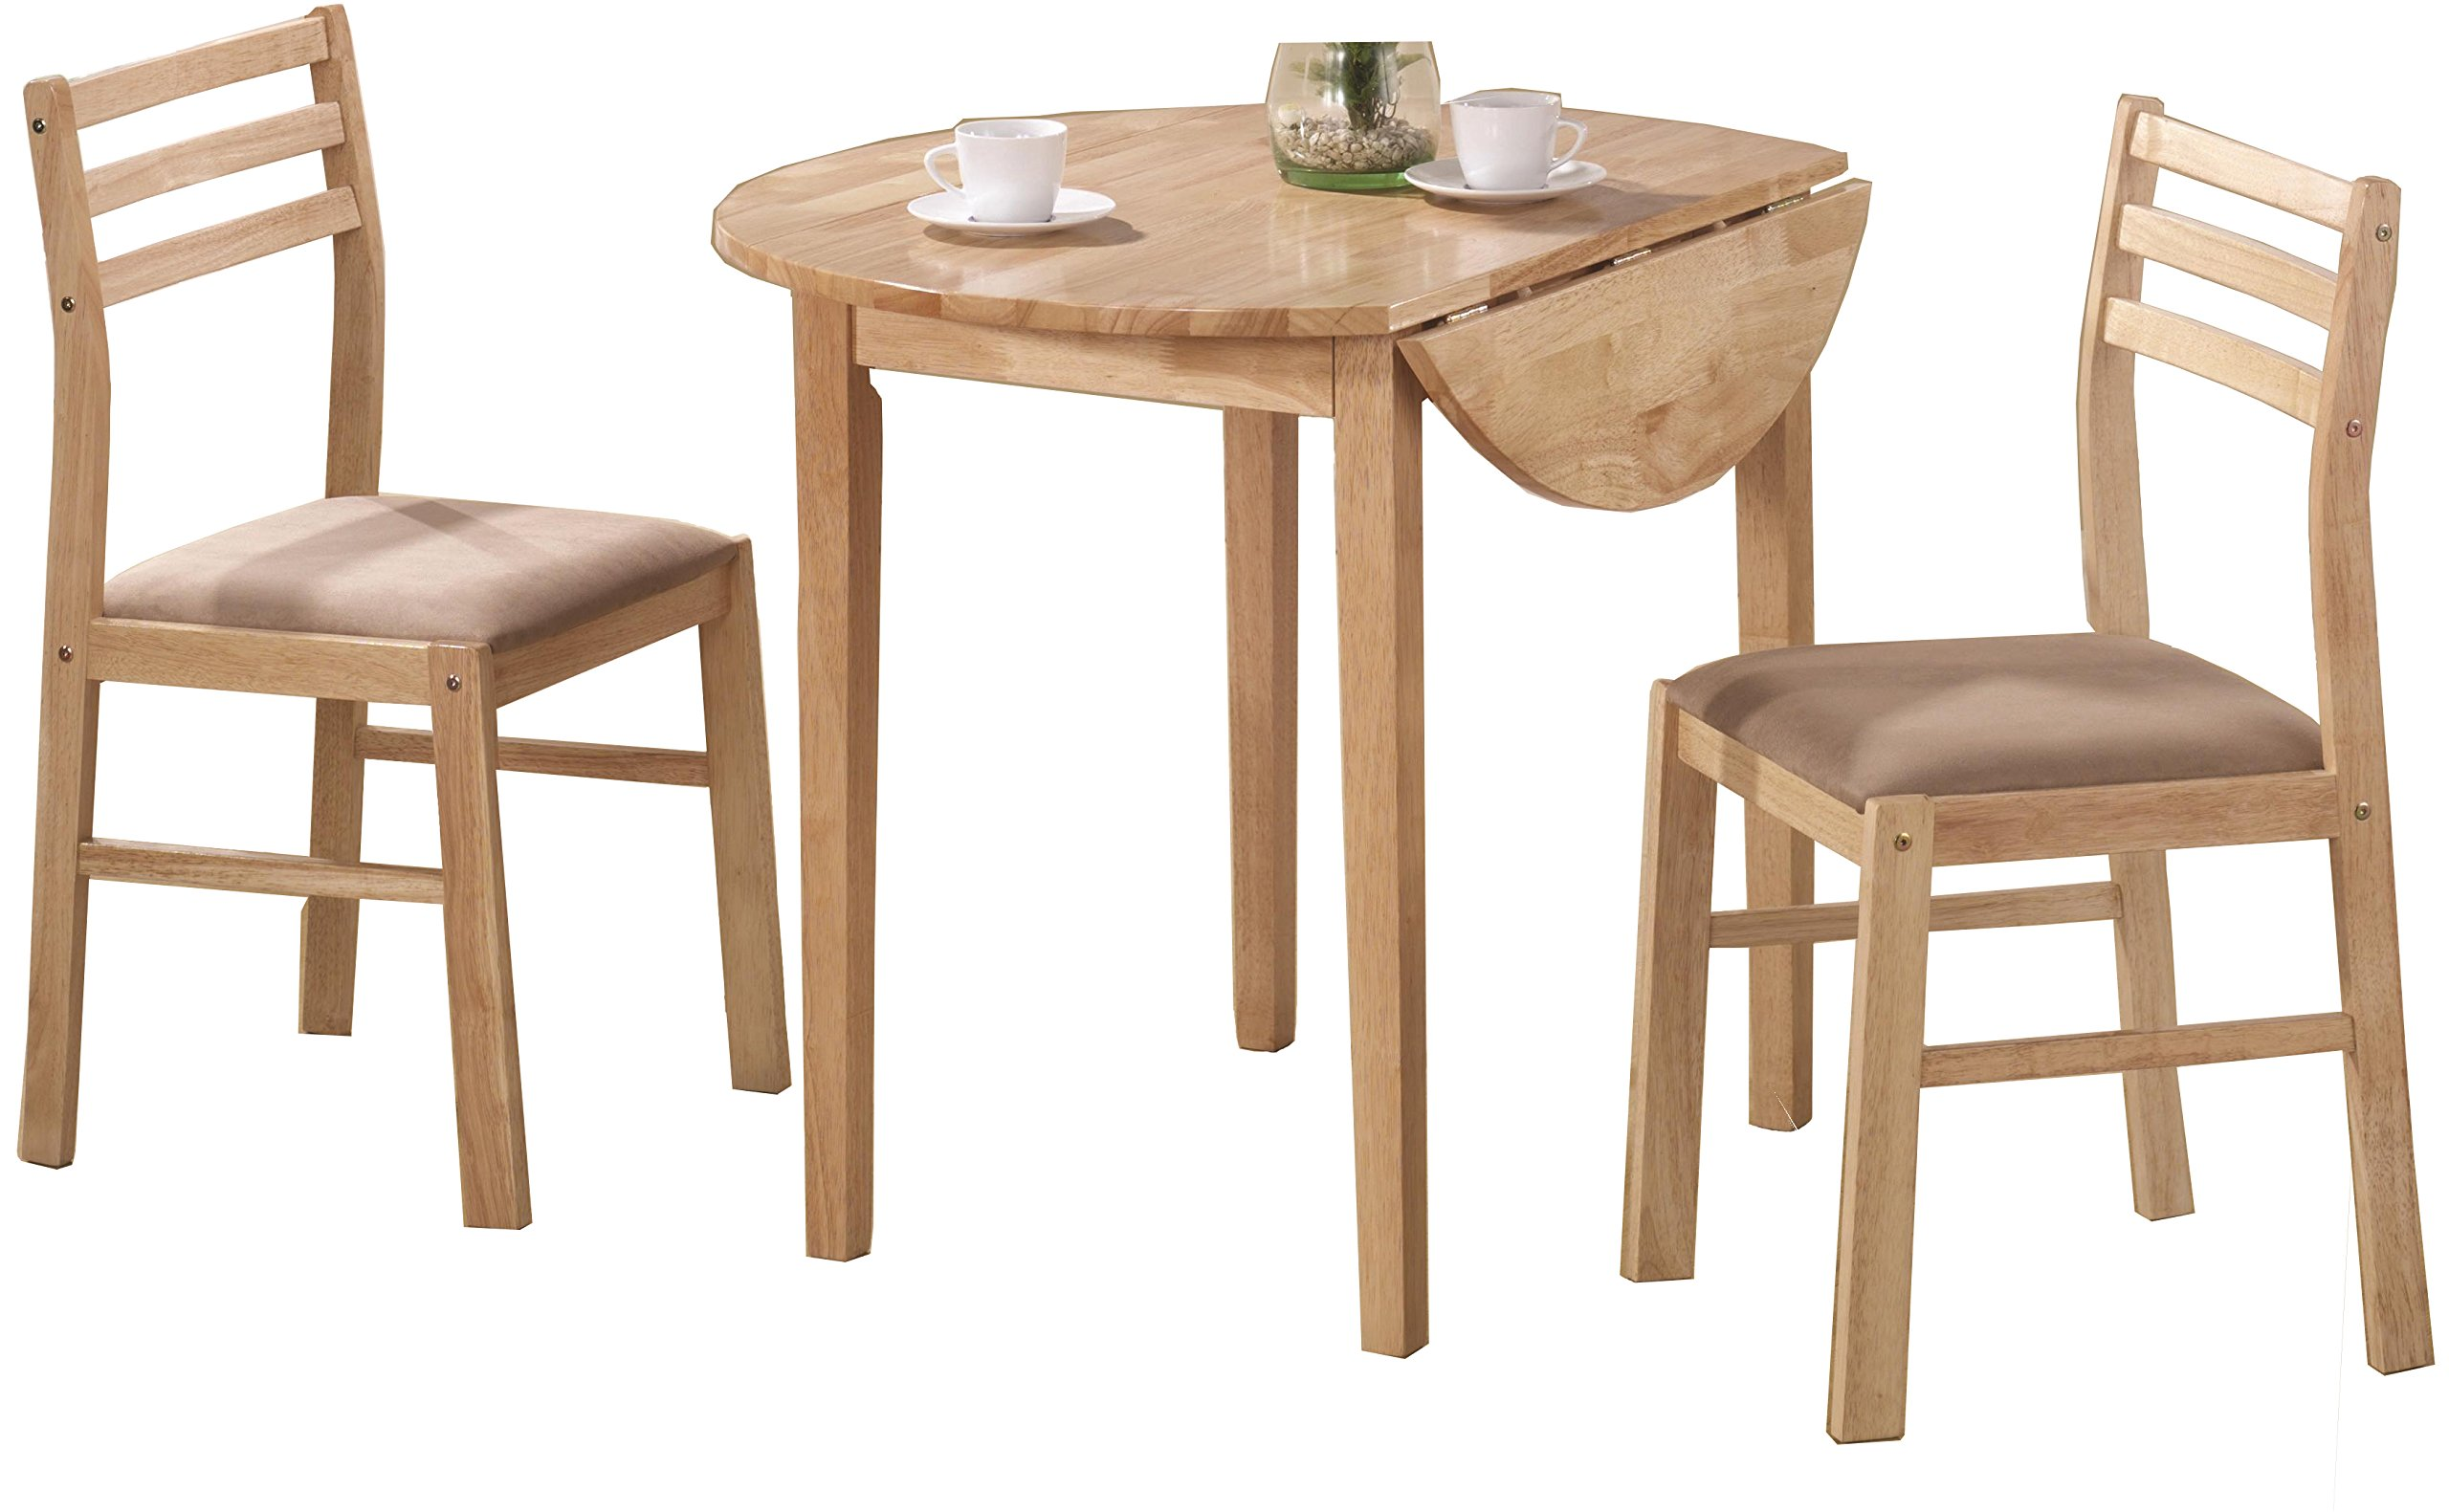 Coaster 3 Piece Dining Set Natural by Coaster Home Furnishings